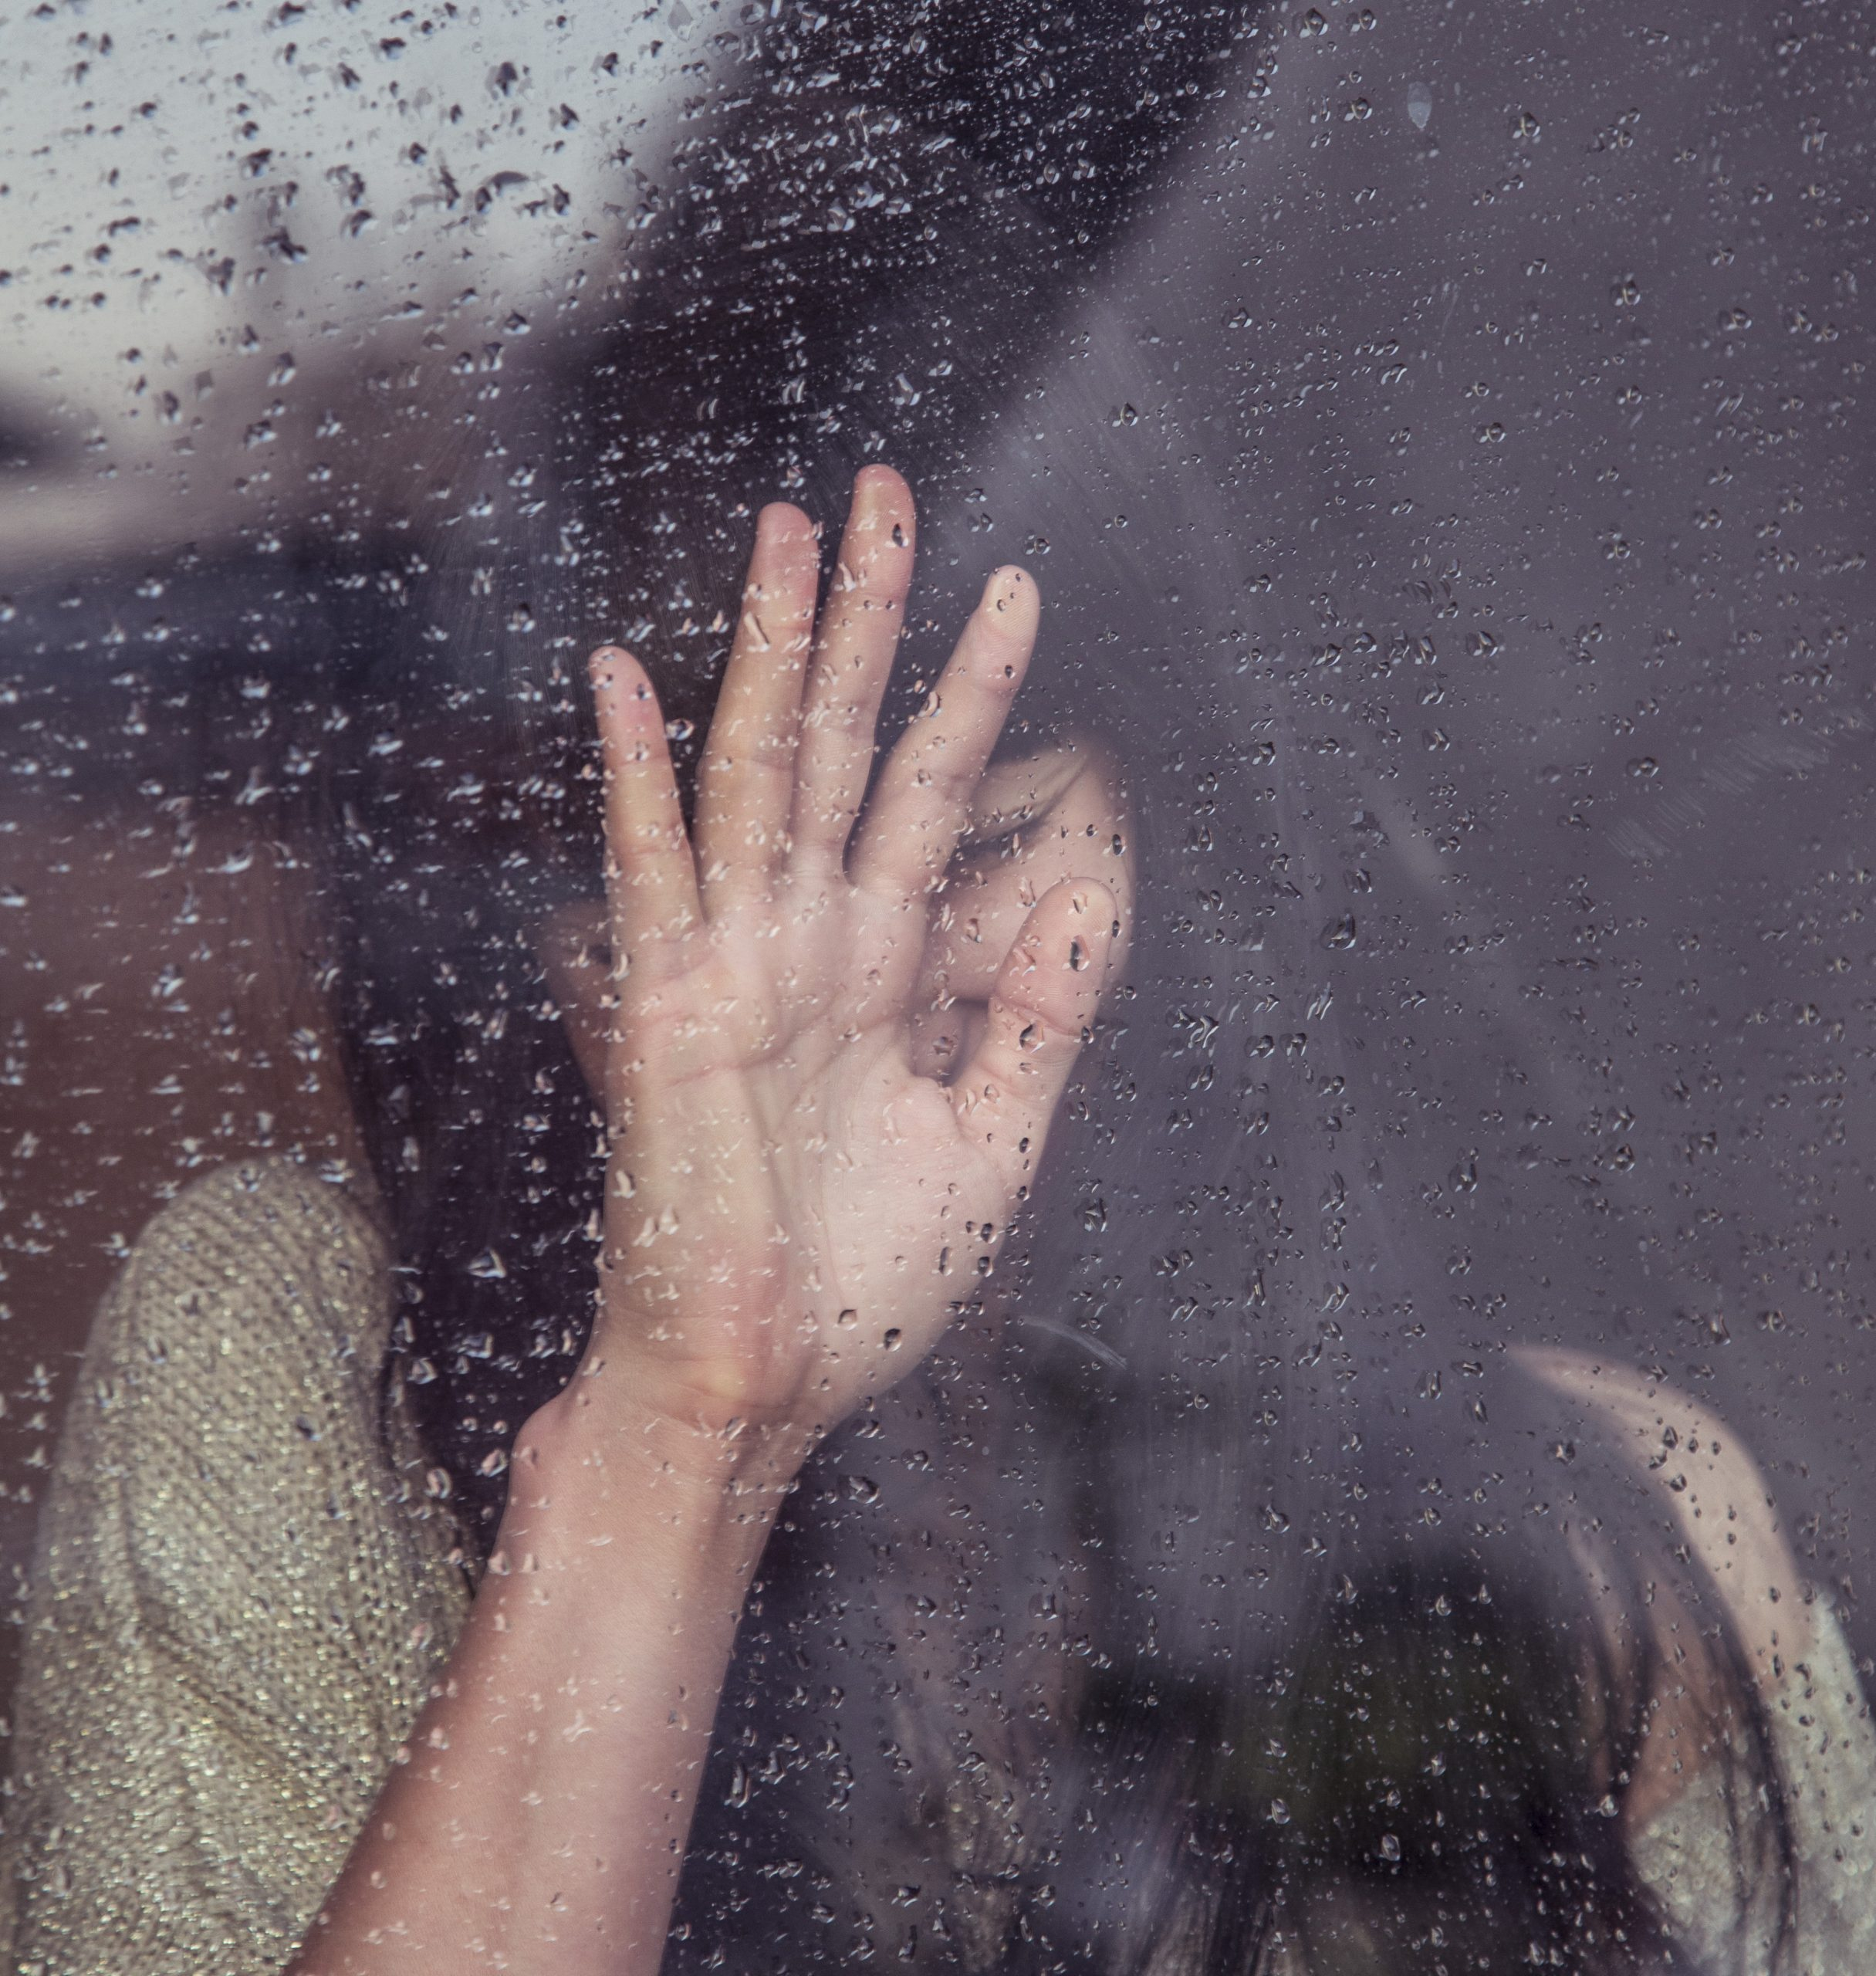 10 signs you're in distress